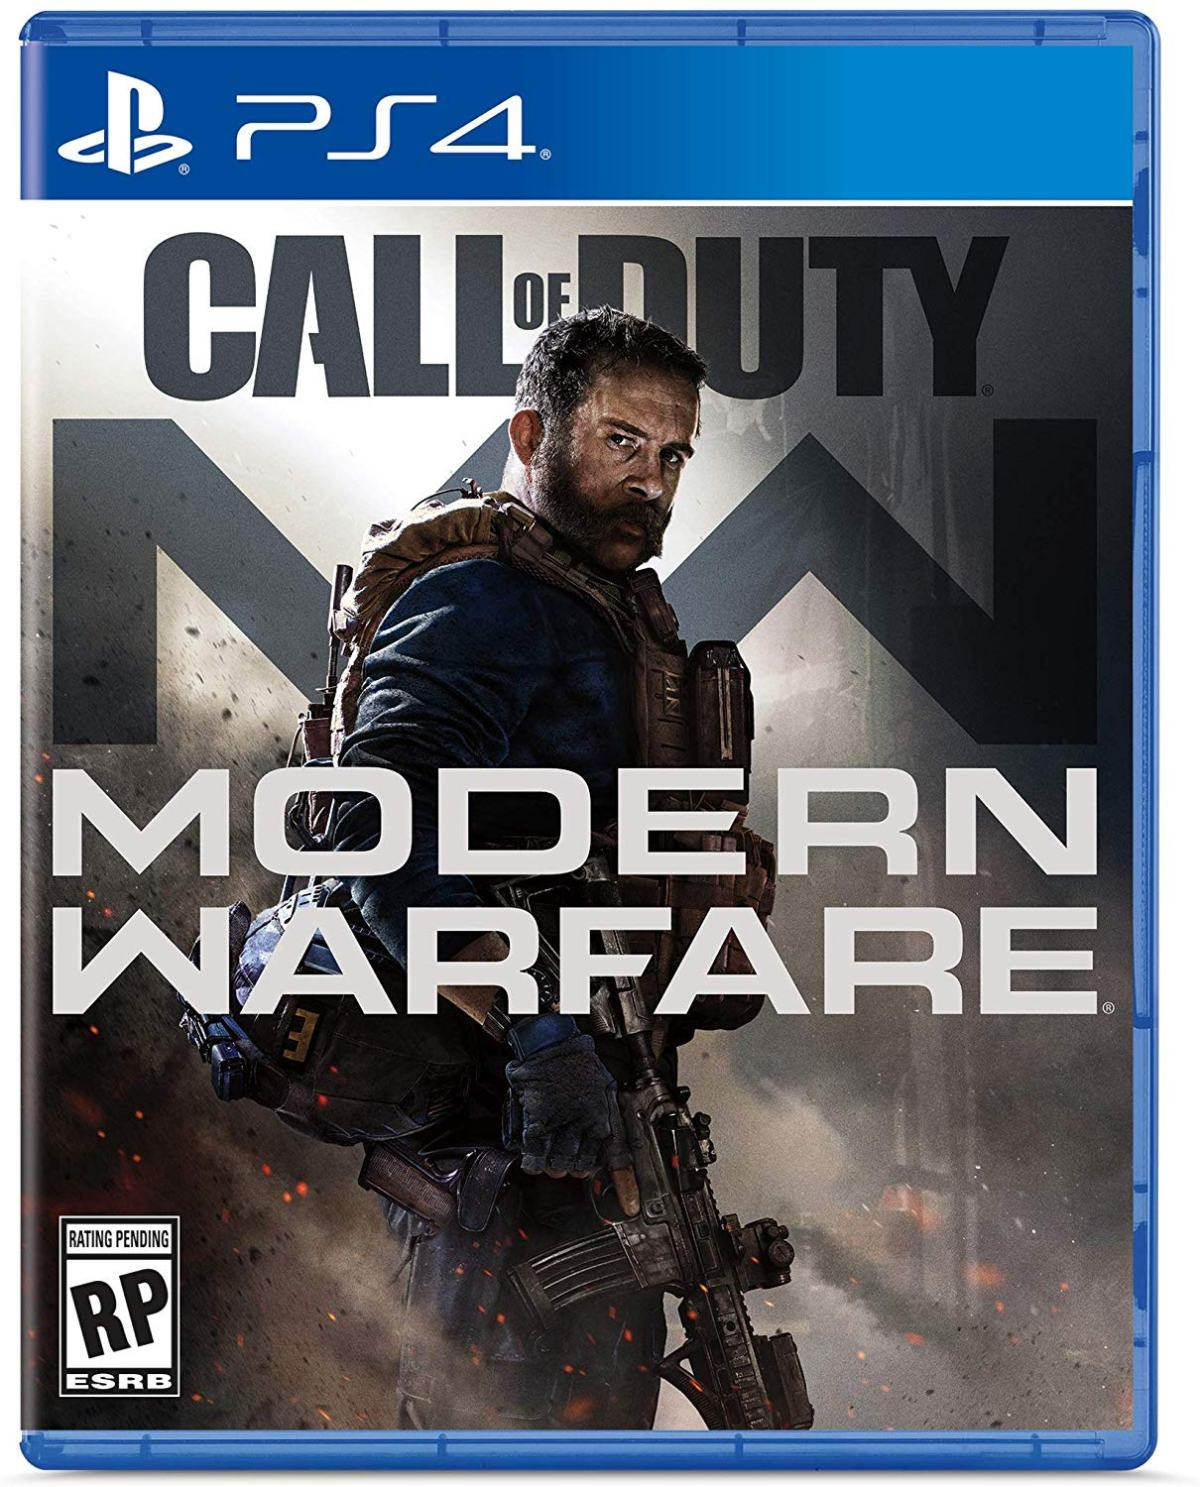 Pre-order Modern Warfare and get Captain Price in Black Ops 4